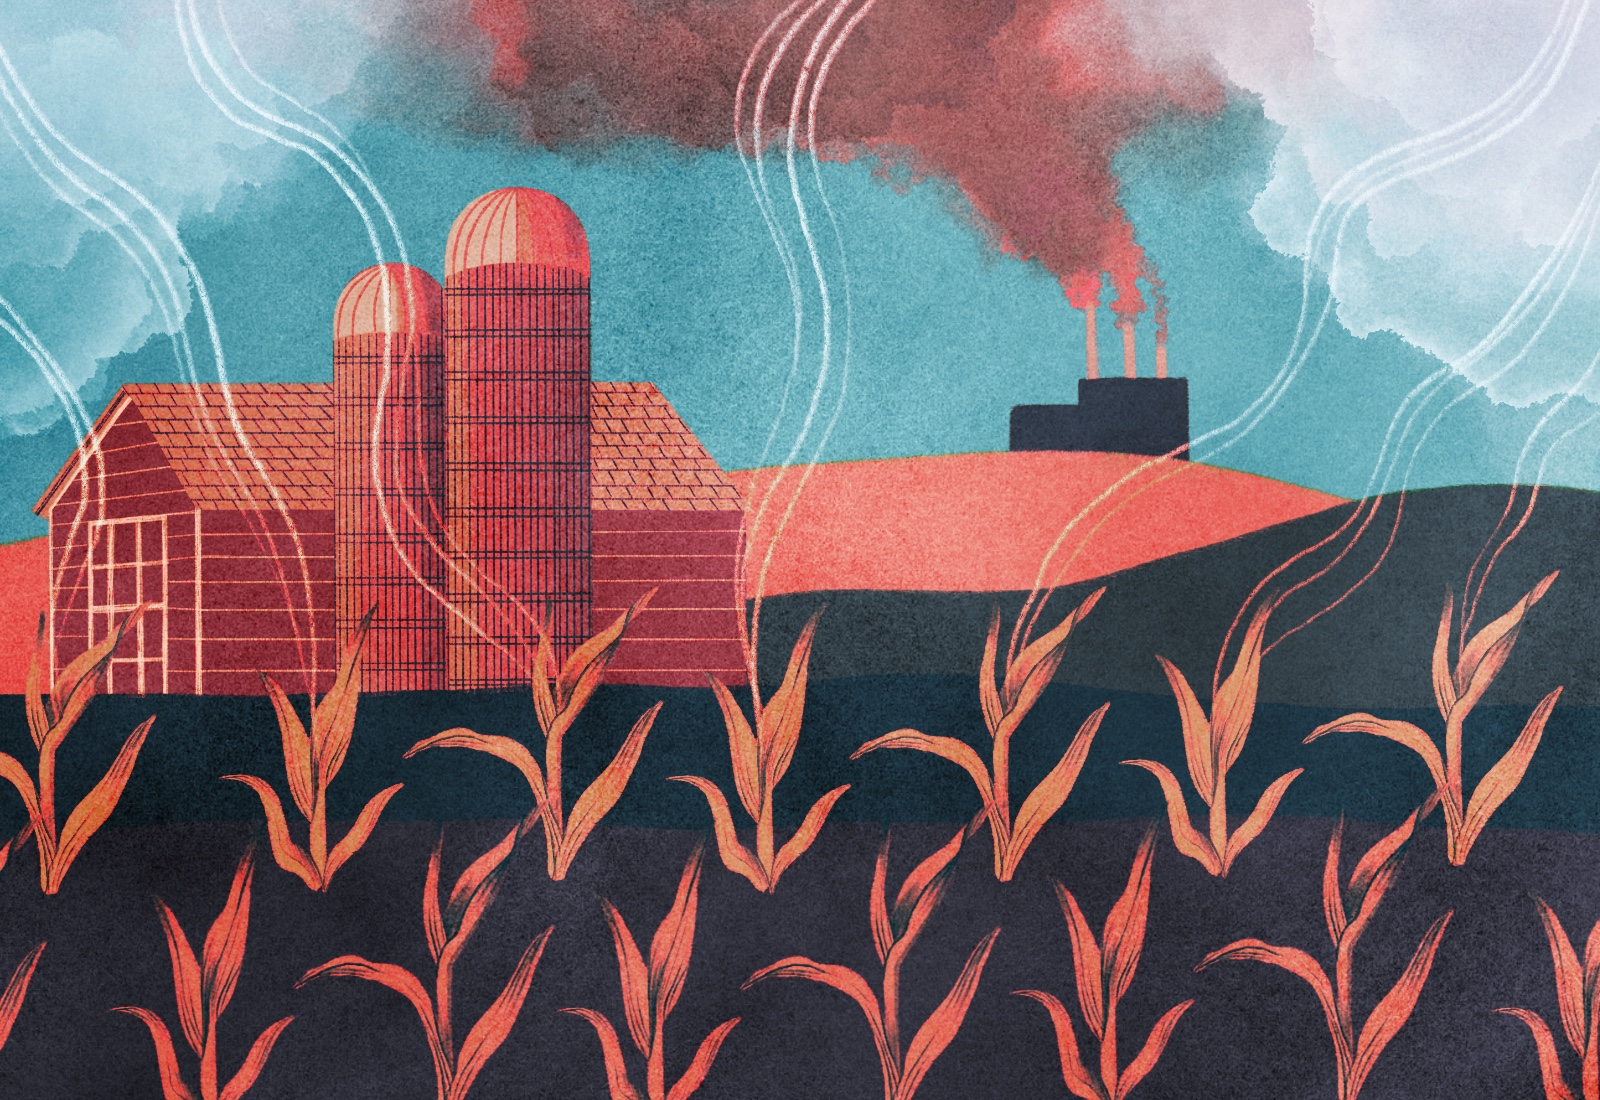 Illustration: farmland with a barn and silos, corn, and a coal factory in the distance